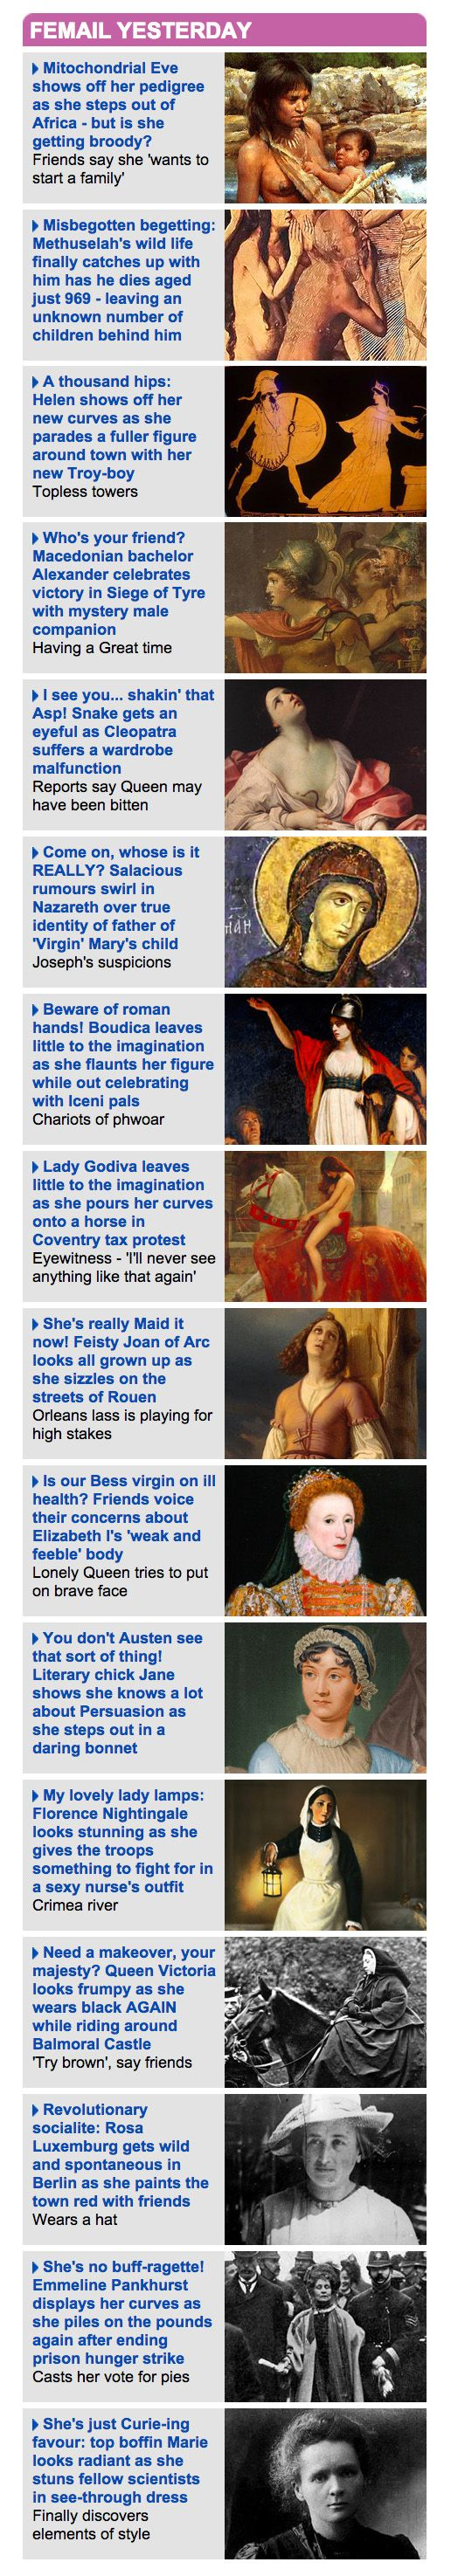 The History Of The World According To The Daily Mail Sidebar Of Shame